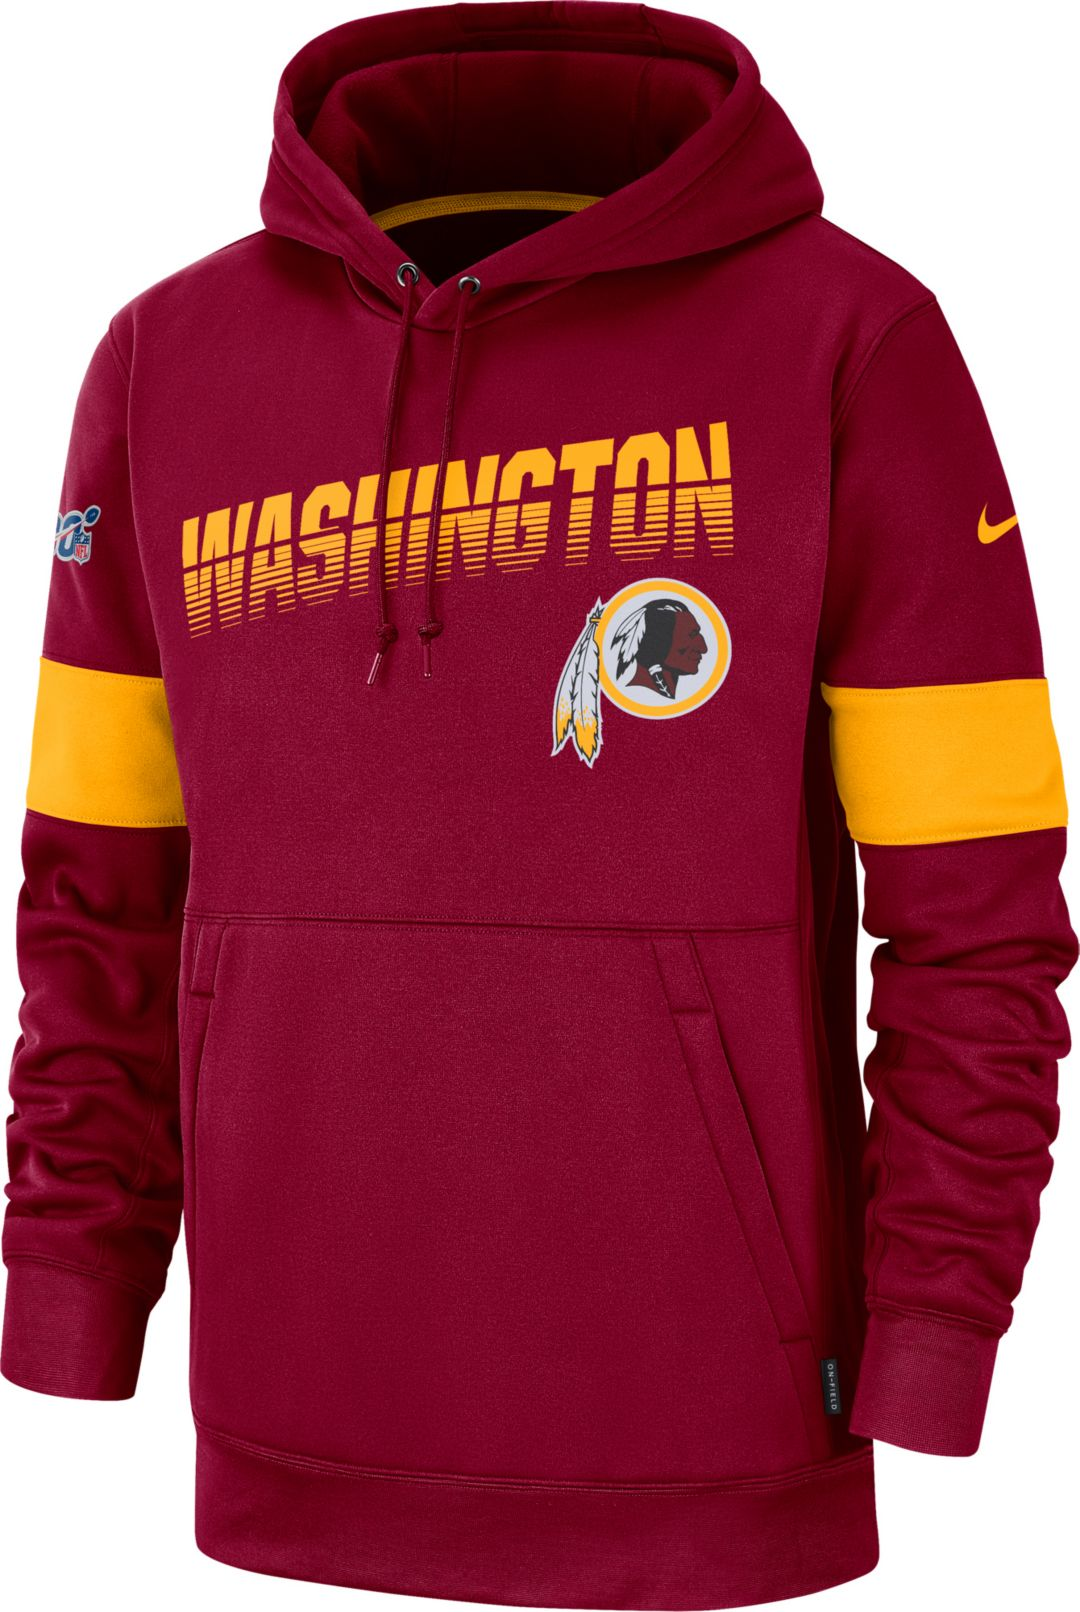 1f4d1b38 Nike Men's Washington Redskins 100th Sideline Therma-FIT Red Pullover Hoodie